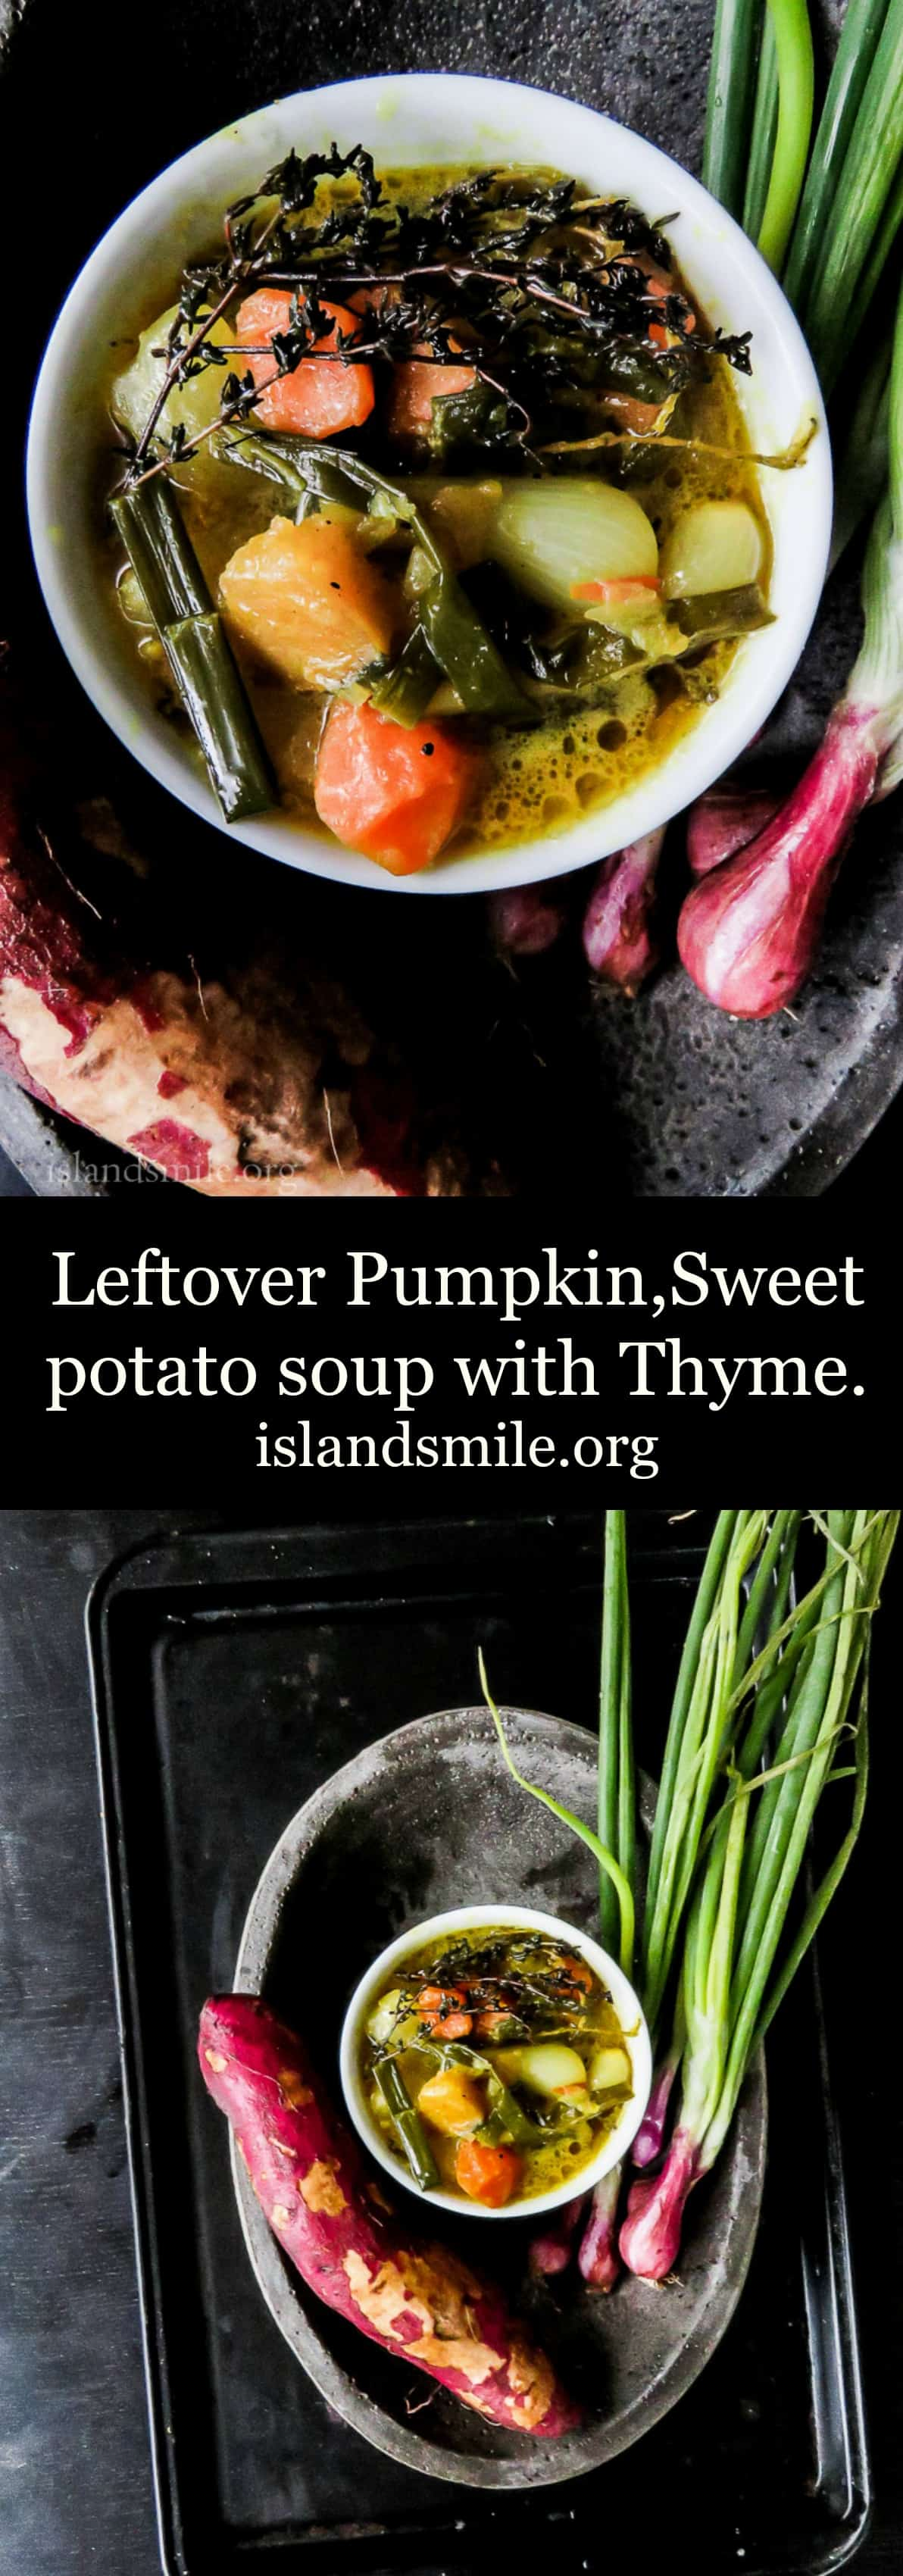 Left over sweet potato, pumpkin soup with thyme image